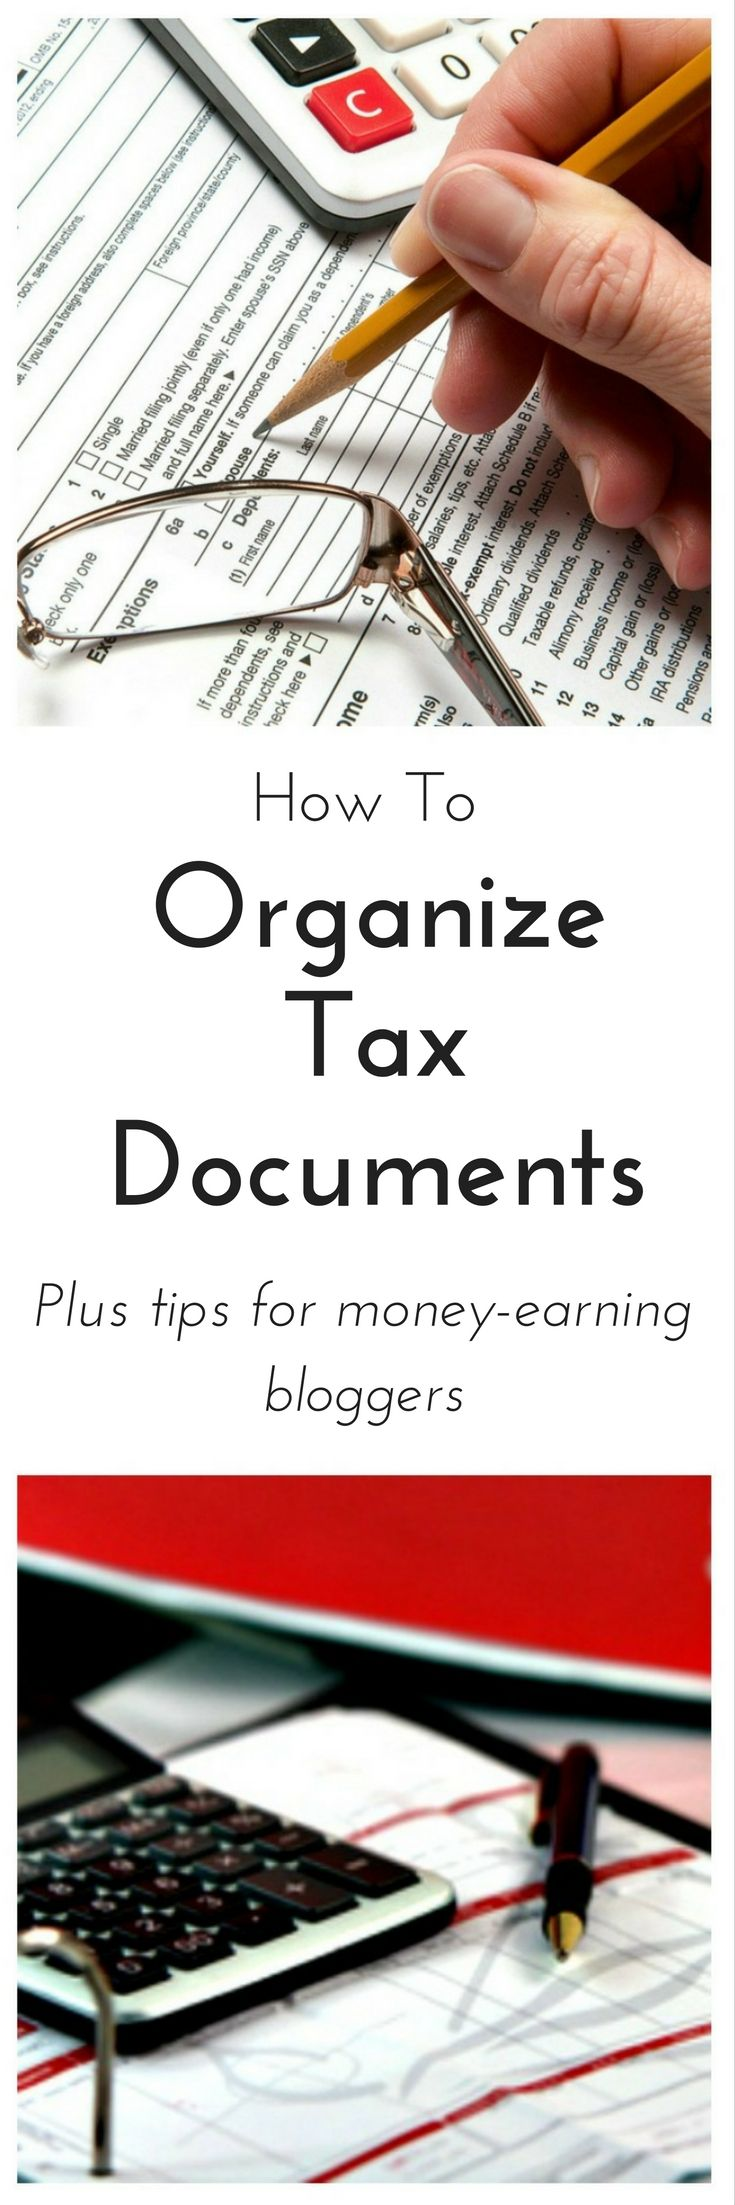 How To Organize Tax Documents - Such an easy system